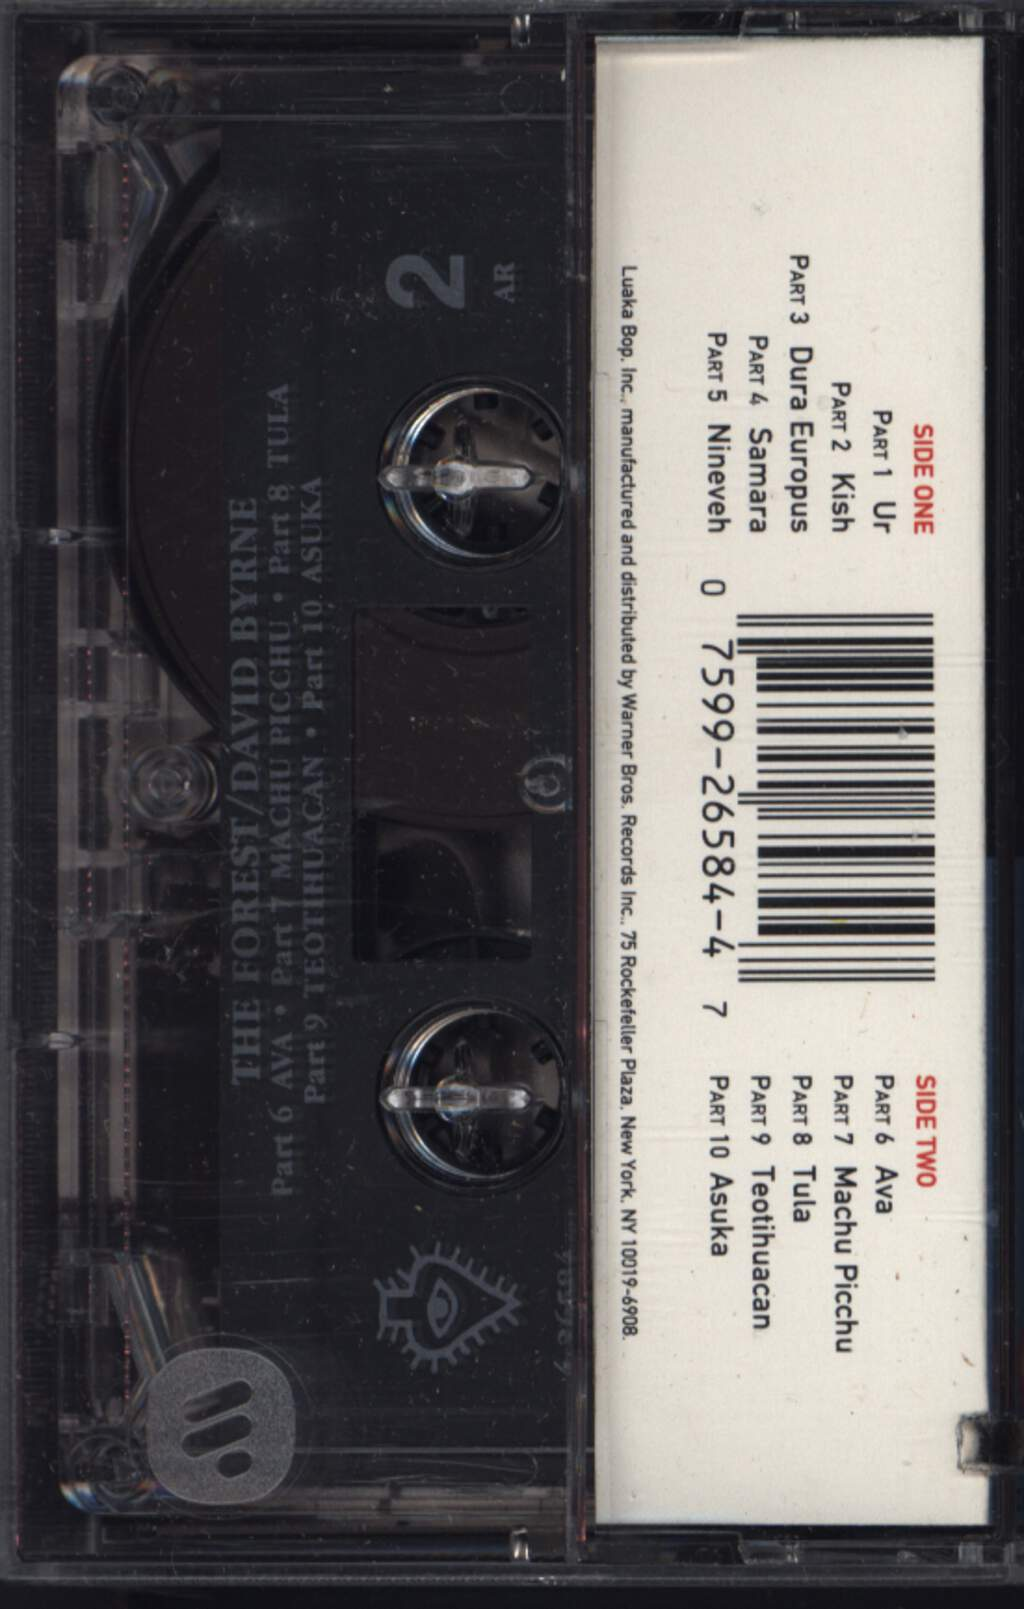 David Byrne: The Forest, Compact Cassette